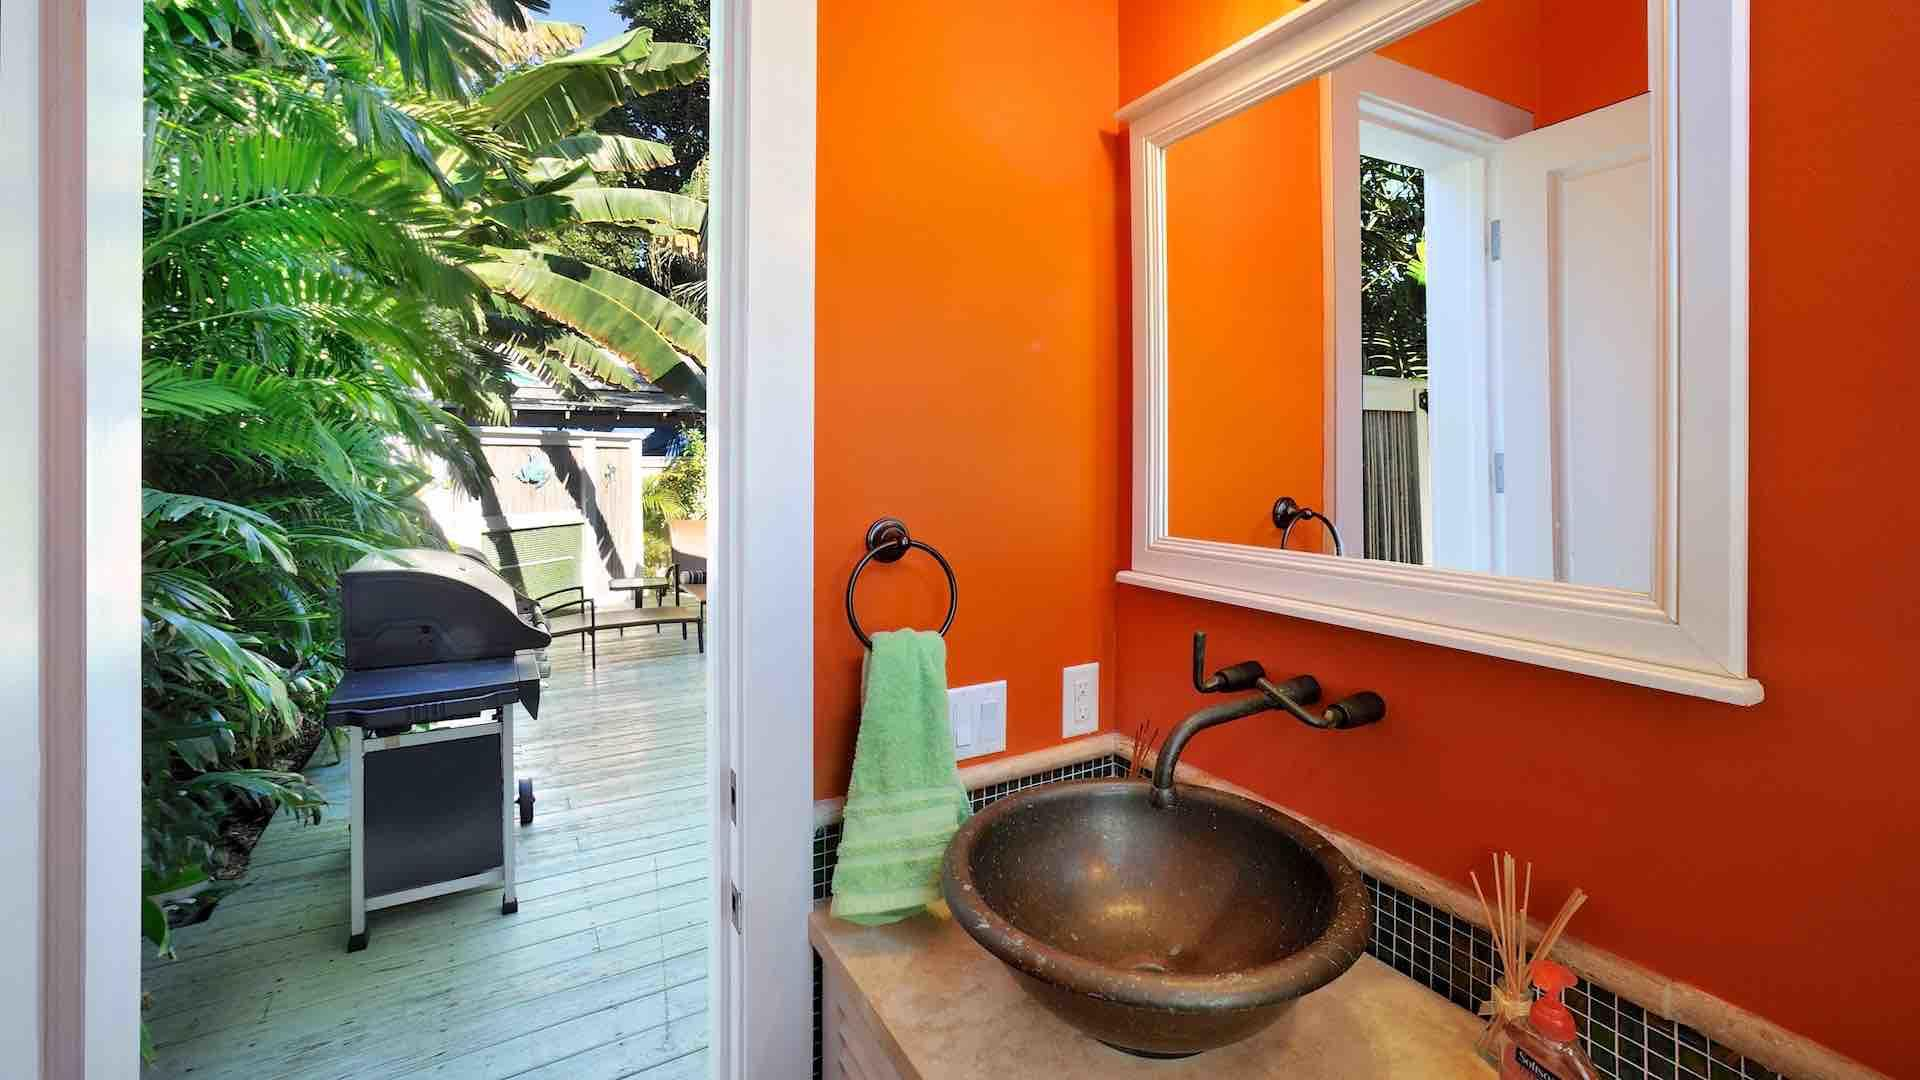 There is a convenient half bath just sets from the pool, and an outdoor shower…